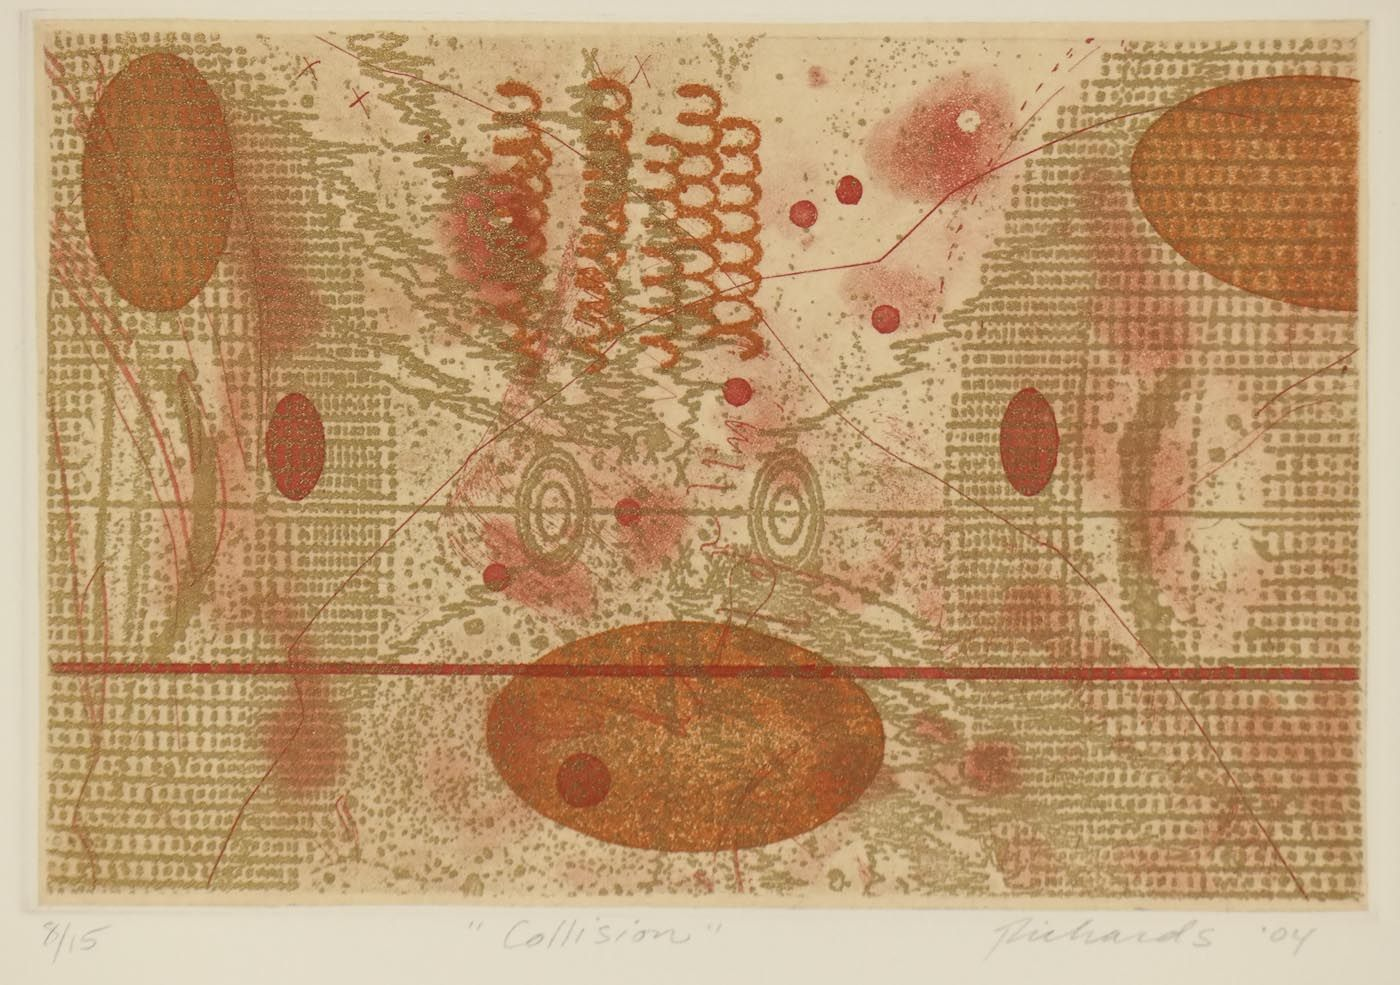 Rosalyn Richards / Collision / etching / intaglio / abstract / color / printmaking / art / decor